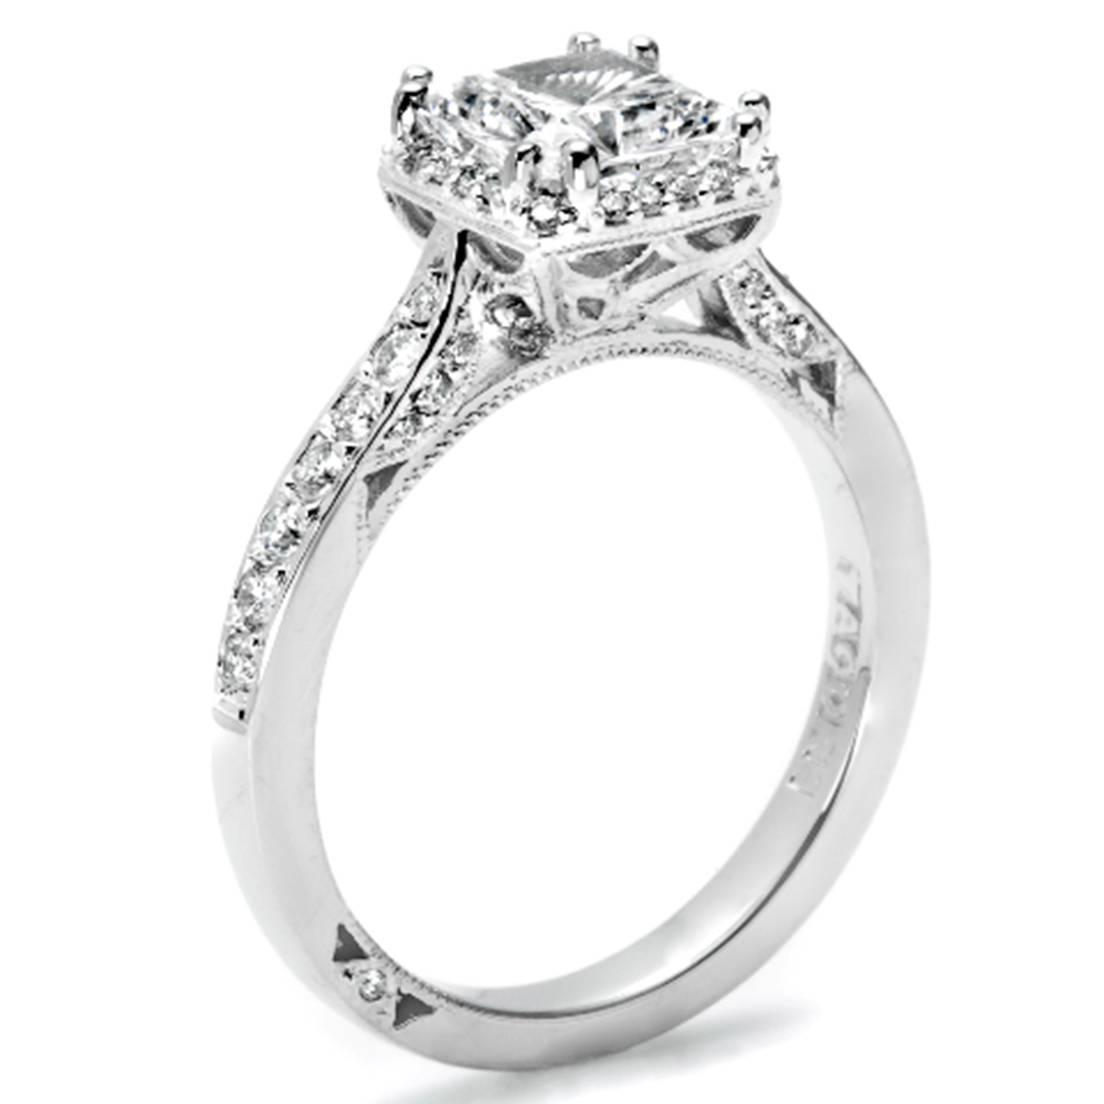 Win This Stunning Platinum Tacori Engagement Ring Engagement 101